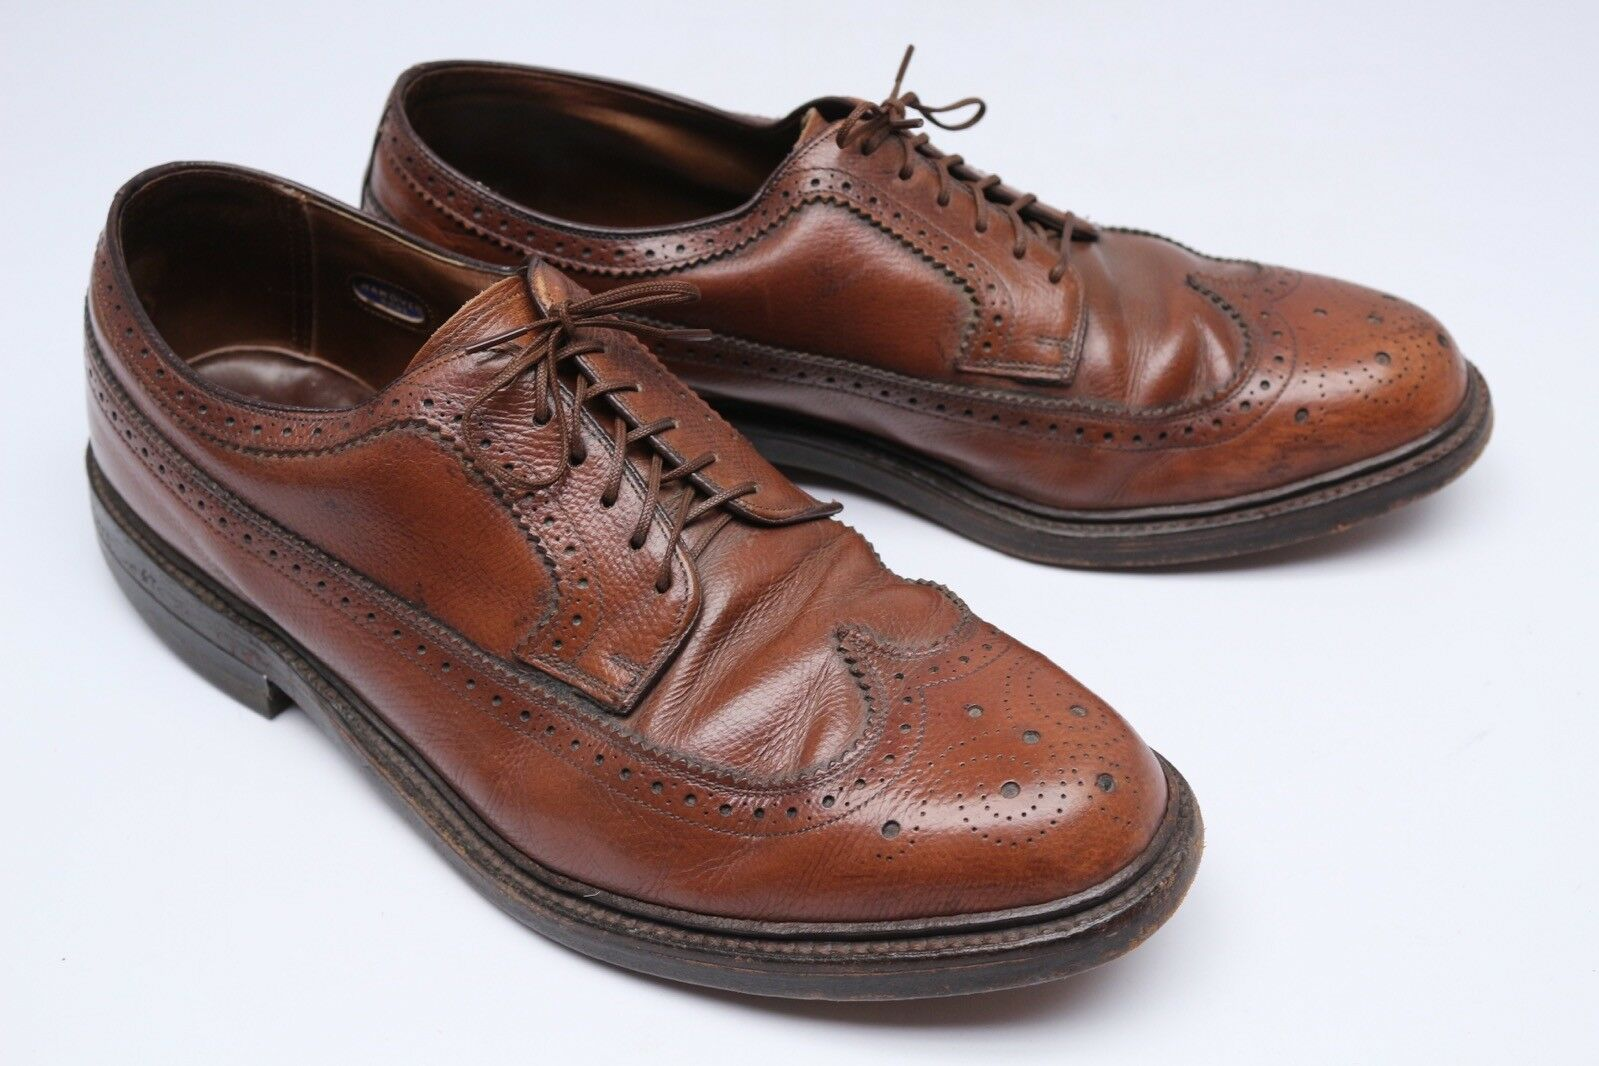 VTG Hanover Mens shoes 10.5 EE D Brown Leather Longwing bluecher Sheppard Wingtip